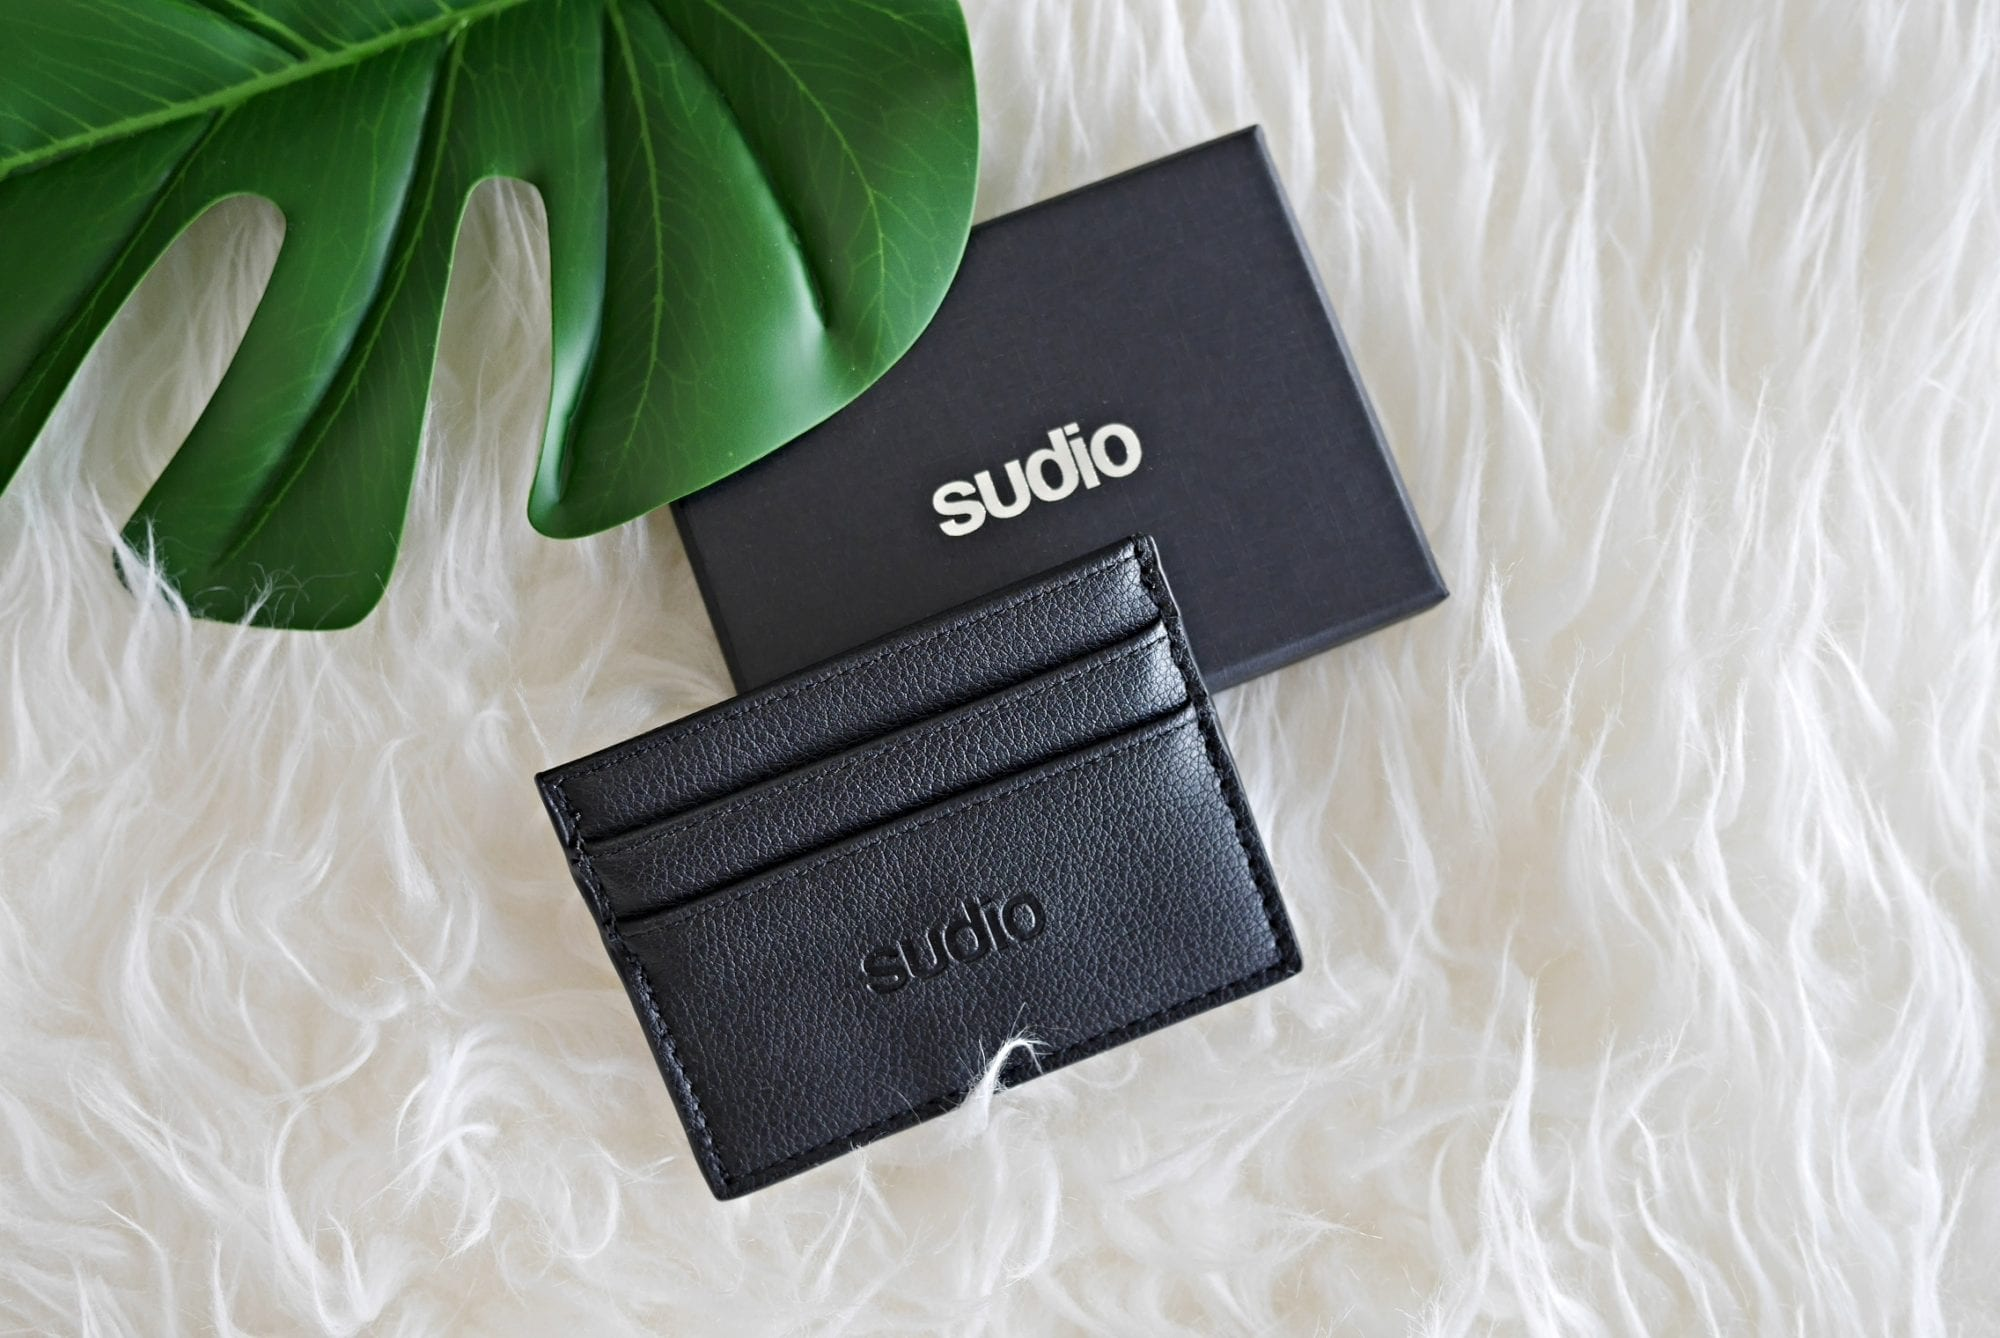 Sudio elva review